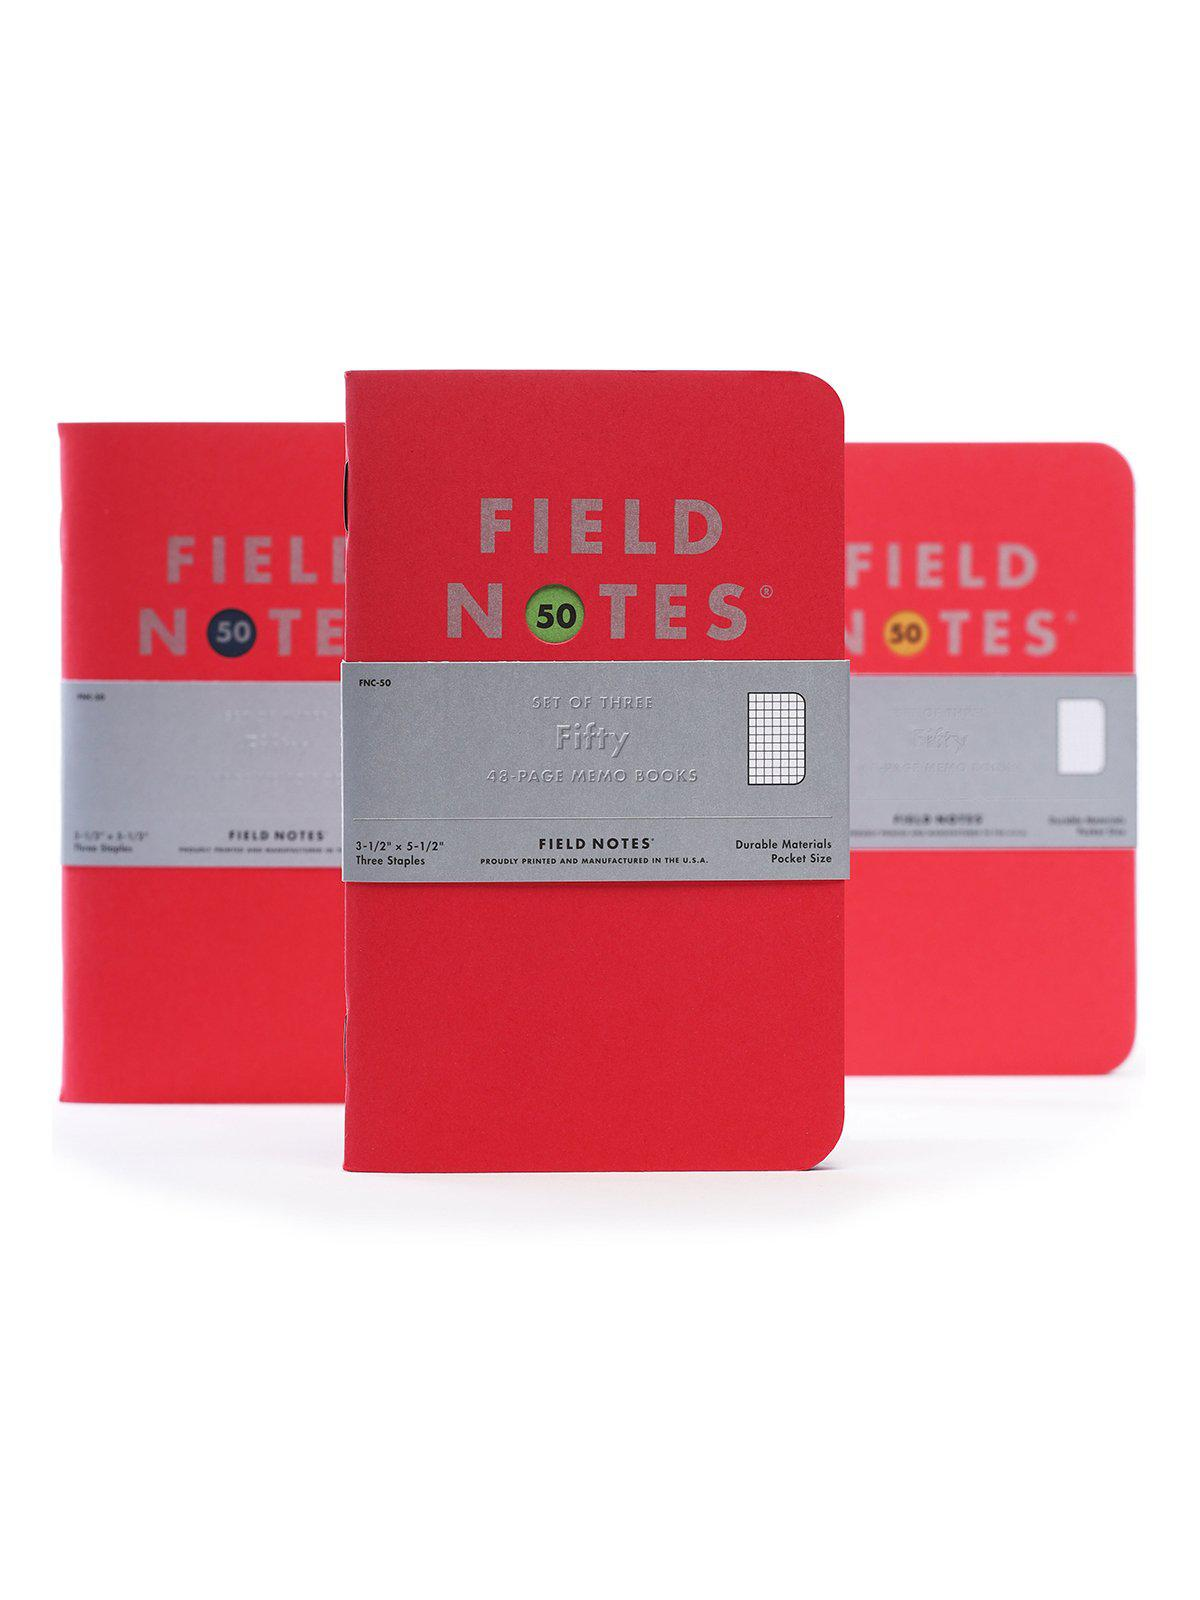 Field Notes Field Notes Fifty Back To Basics 3 Pack Graph Paper